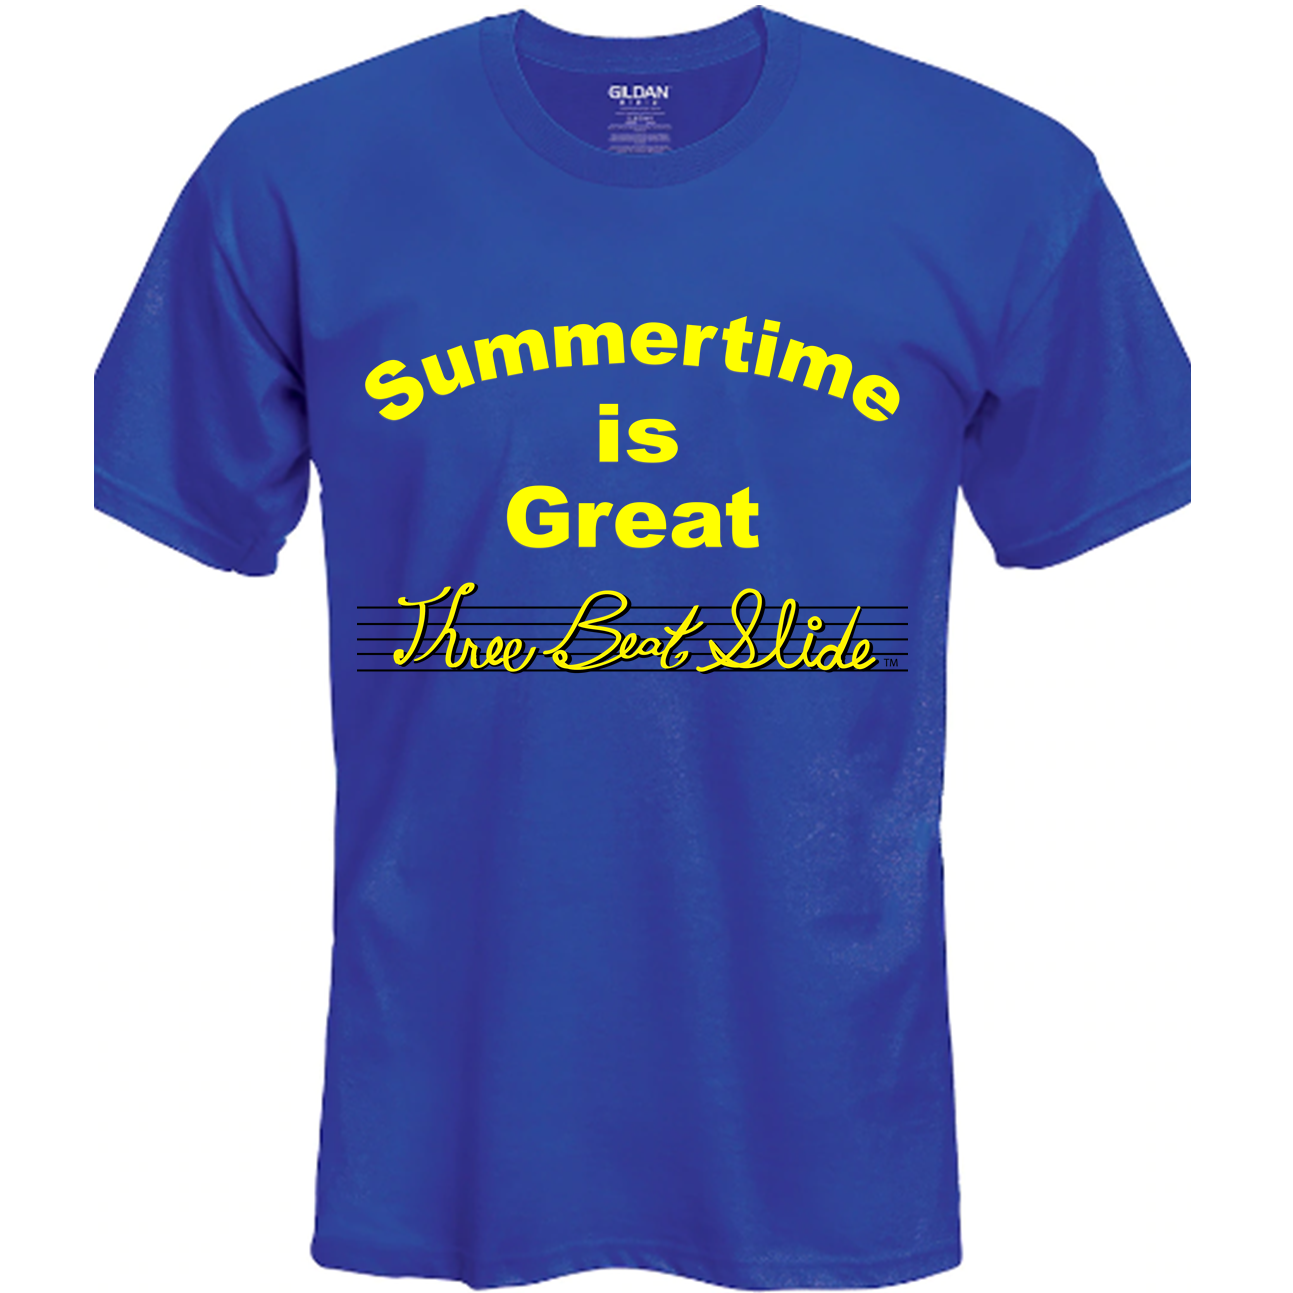 Summertime is Great T-Shirt